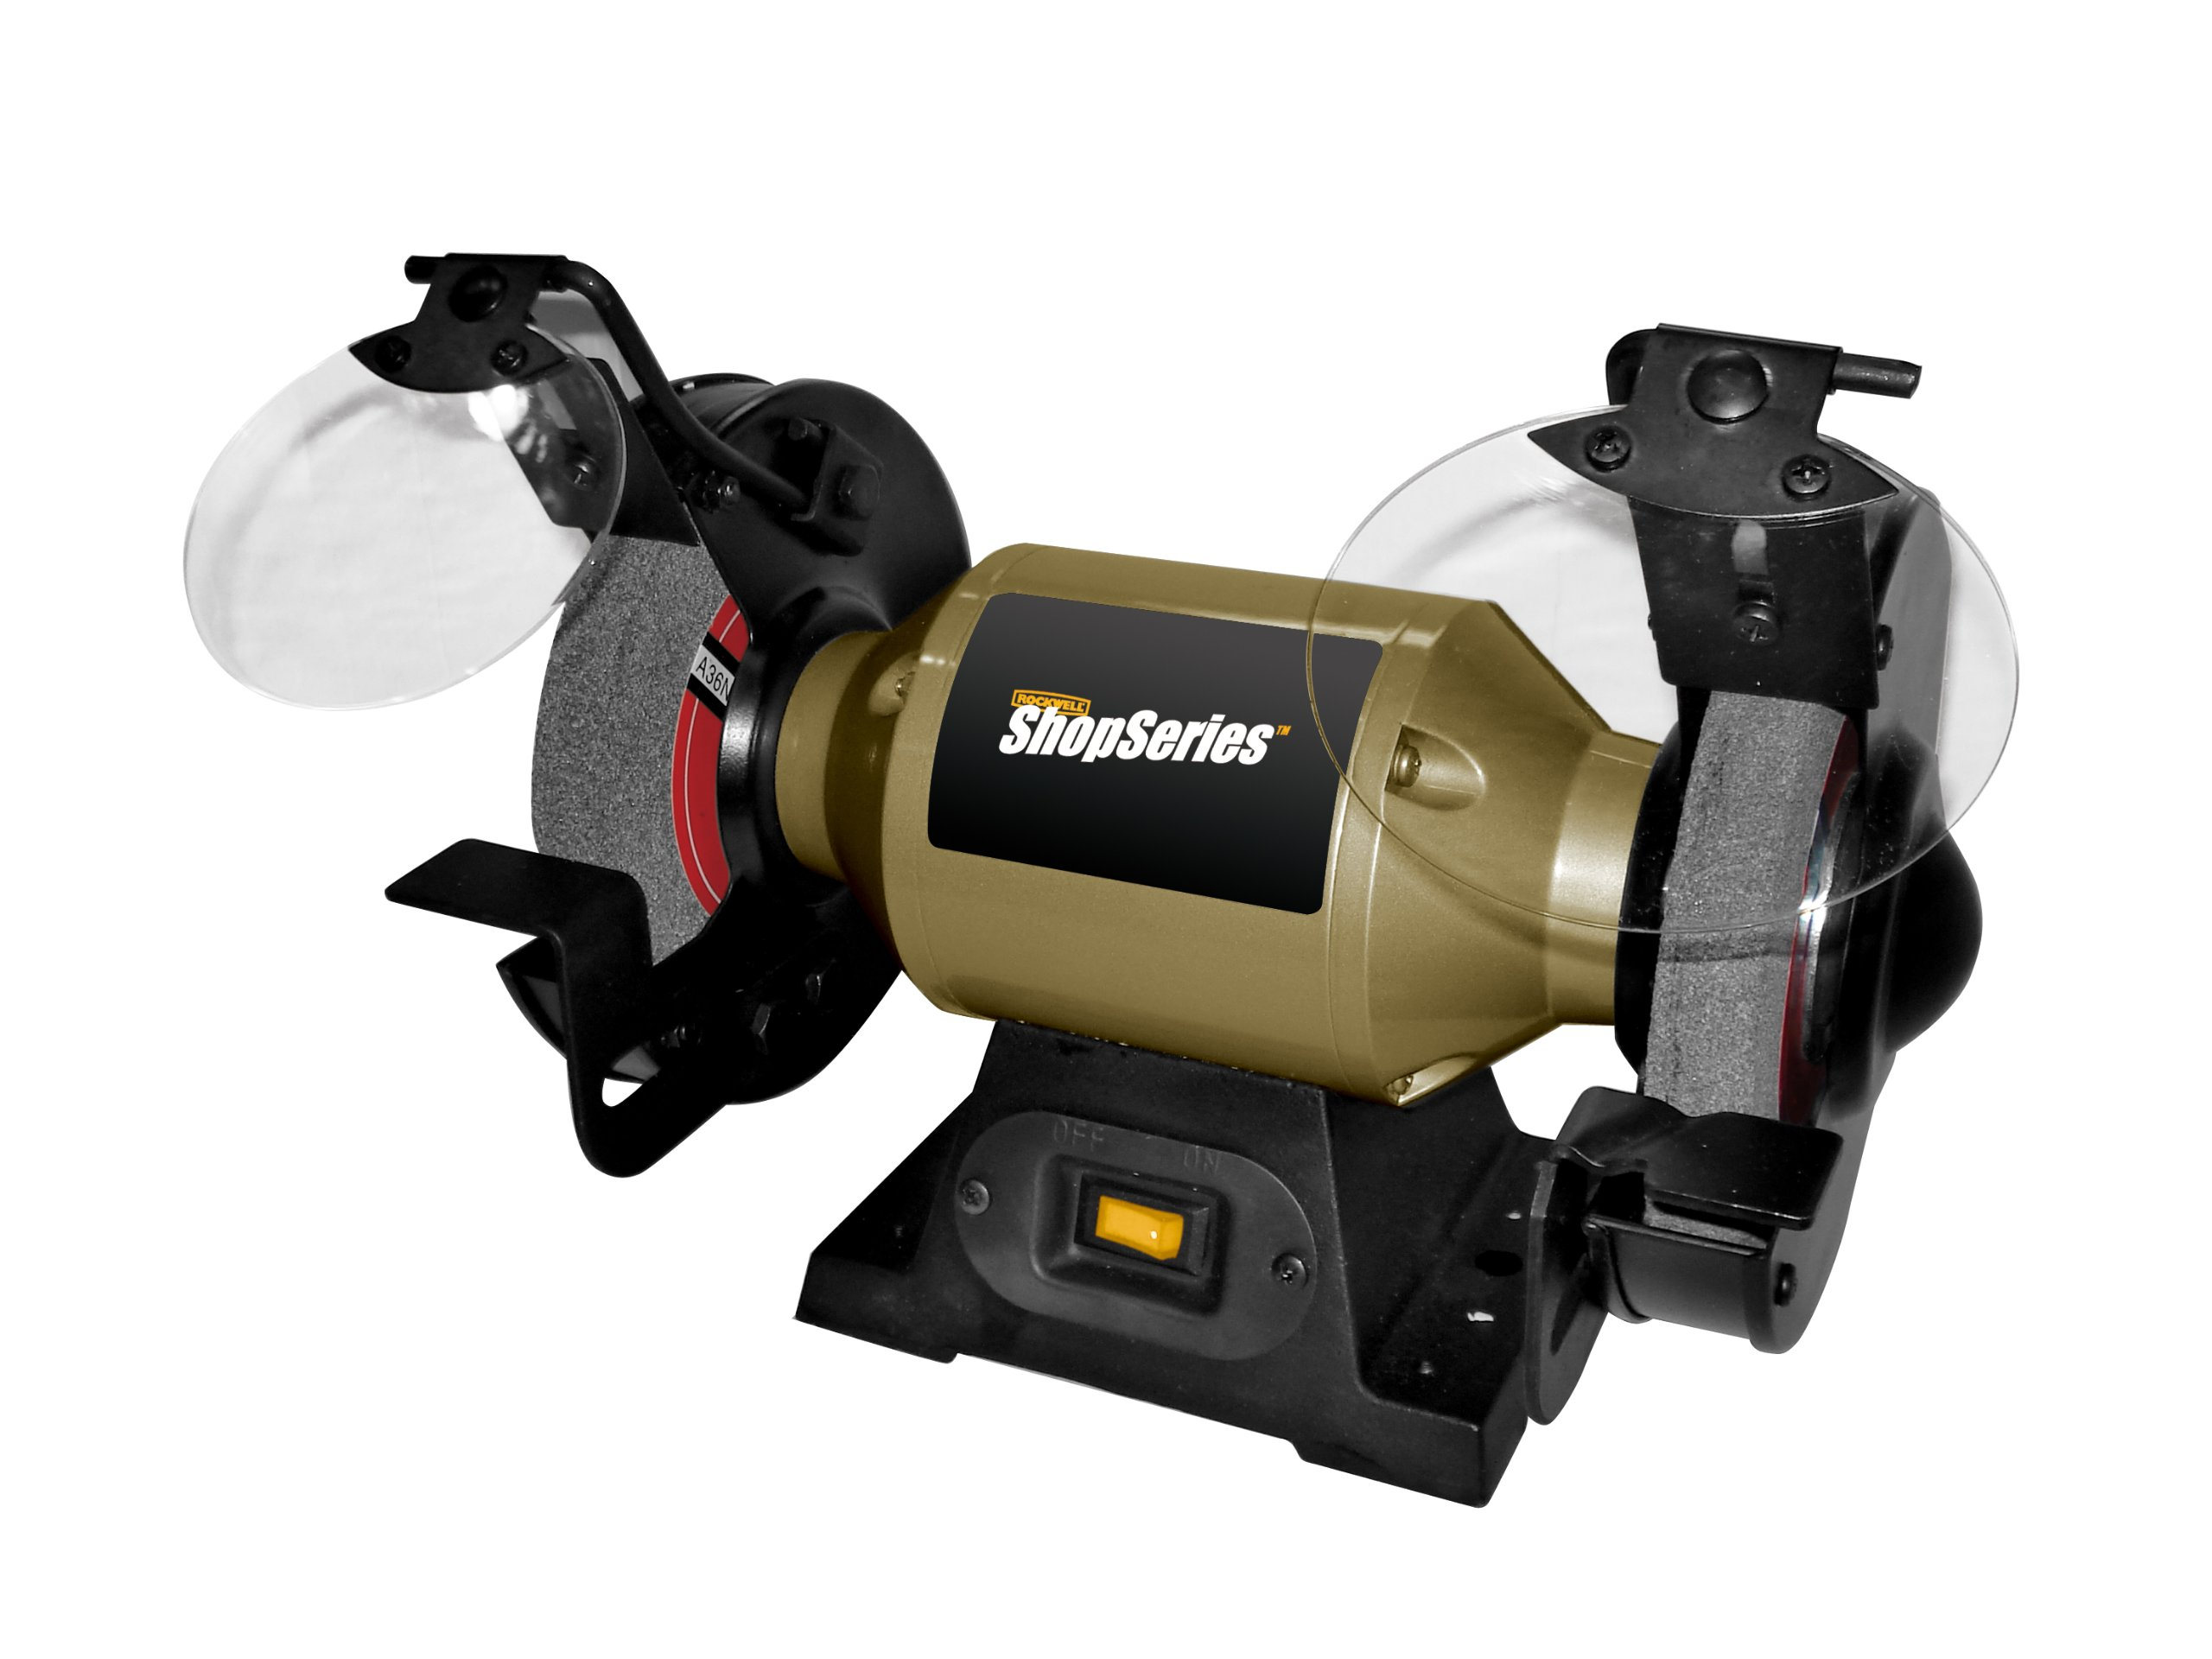 Rockwell ShopSeries RK7867 6-Inch Bench Grinder by Positec (Image #1)